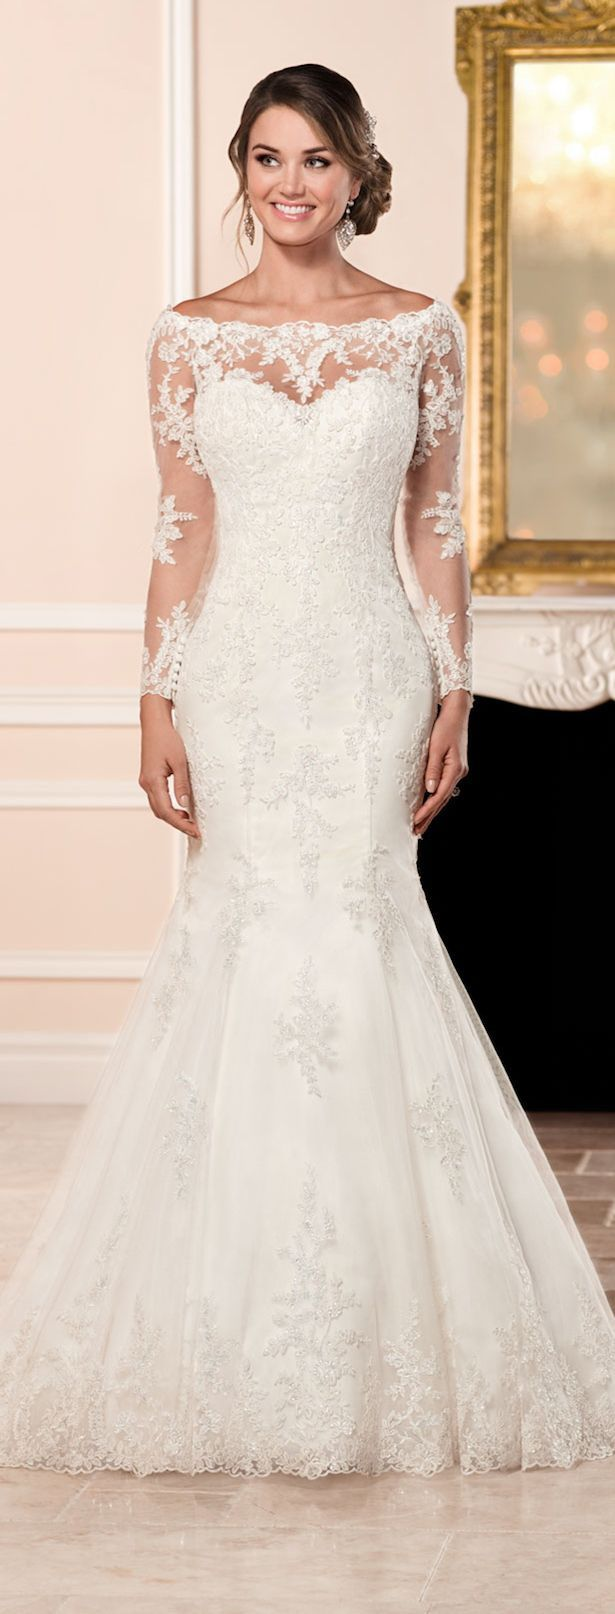 2018 October Wedding Dresses Women S For Weddings Check More At Http